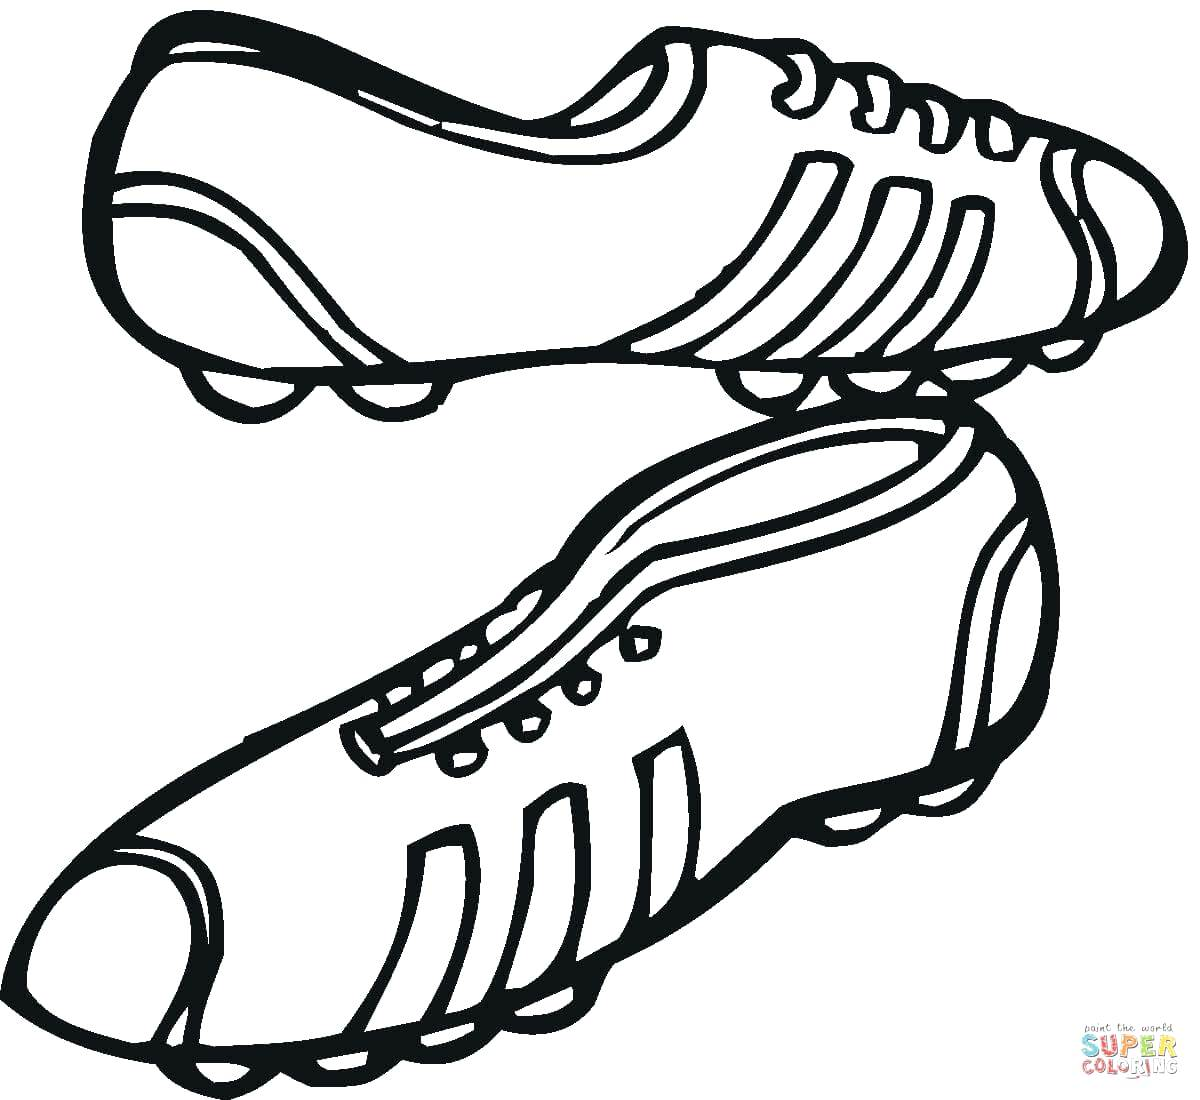 1200x1100 Coloring Pages Mesmerizing Coloring Shoes. Tie Dye Shoes